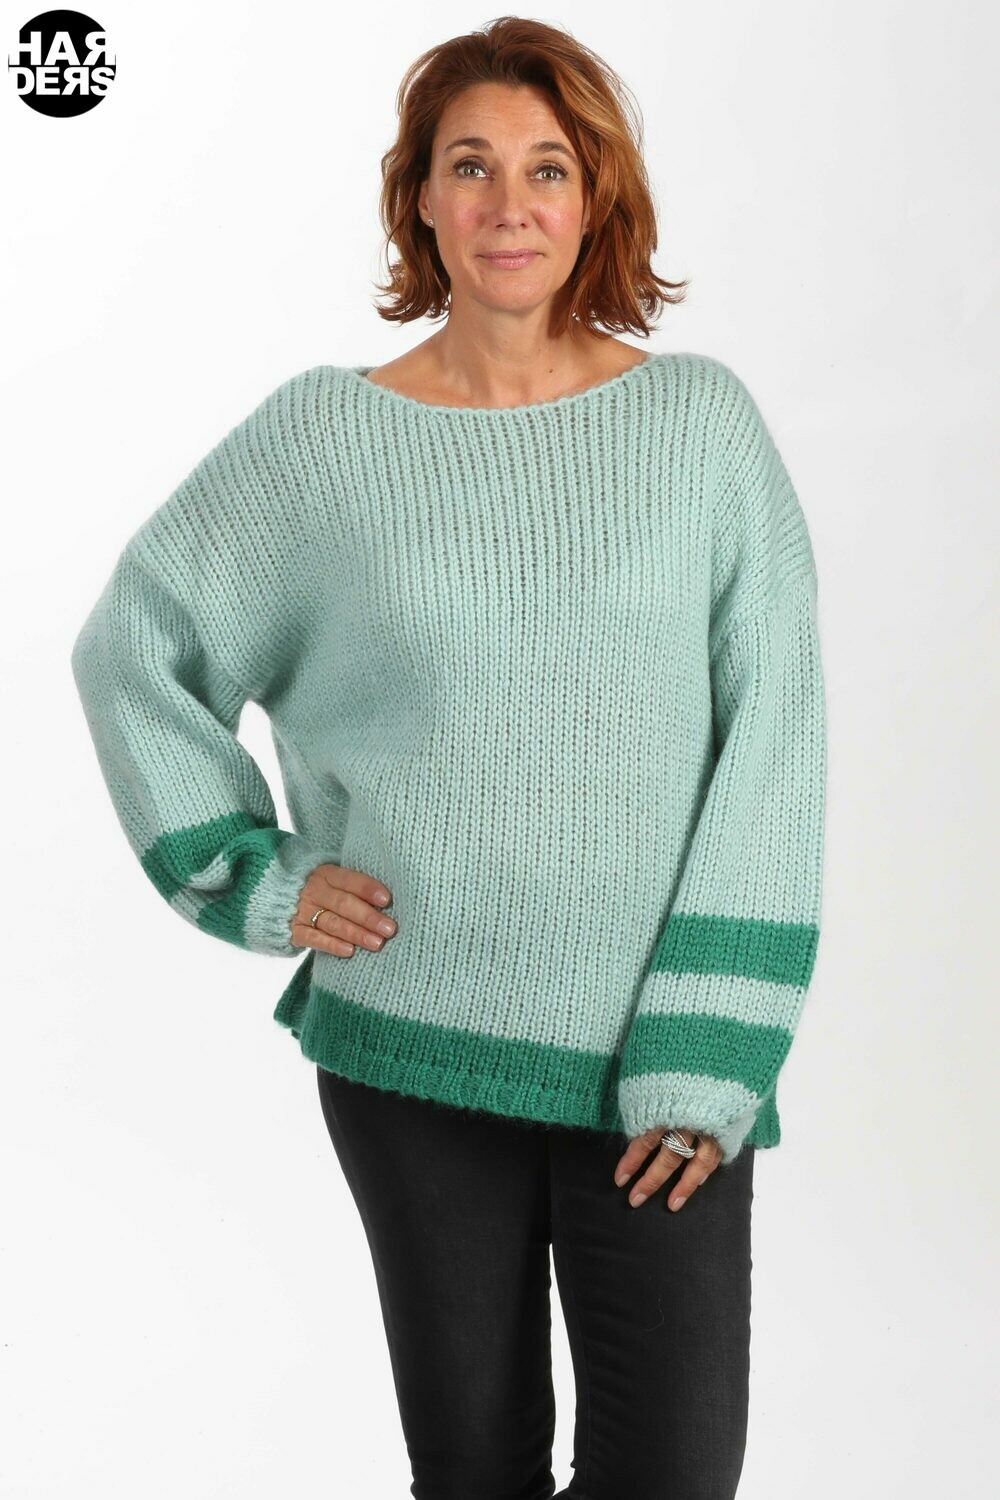 ME369 by Sacks Pullover